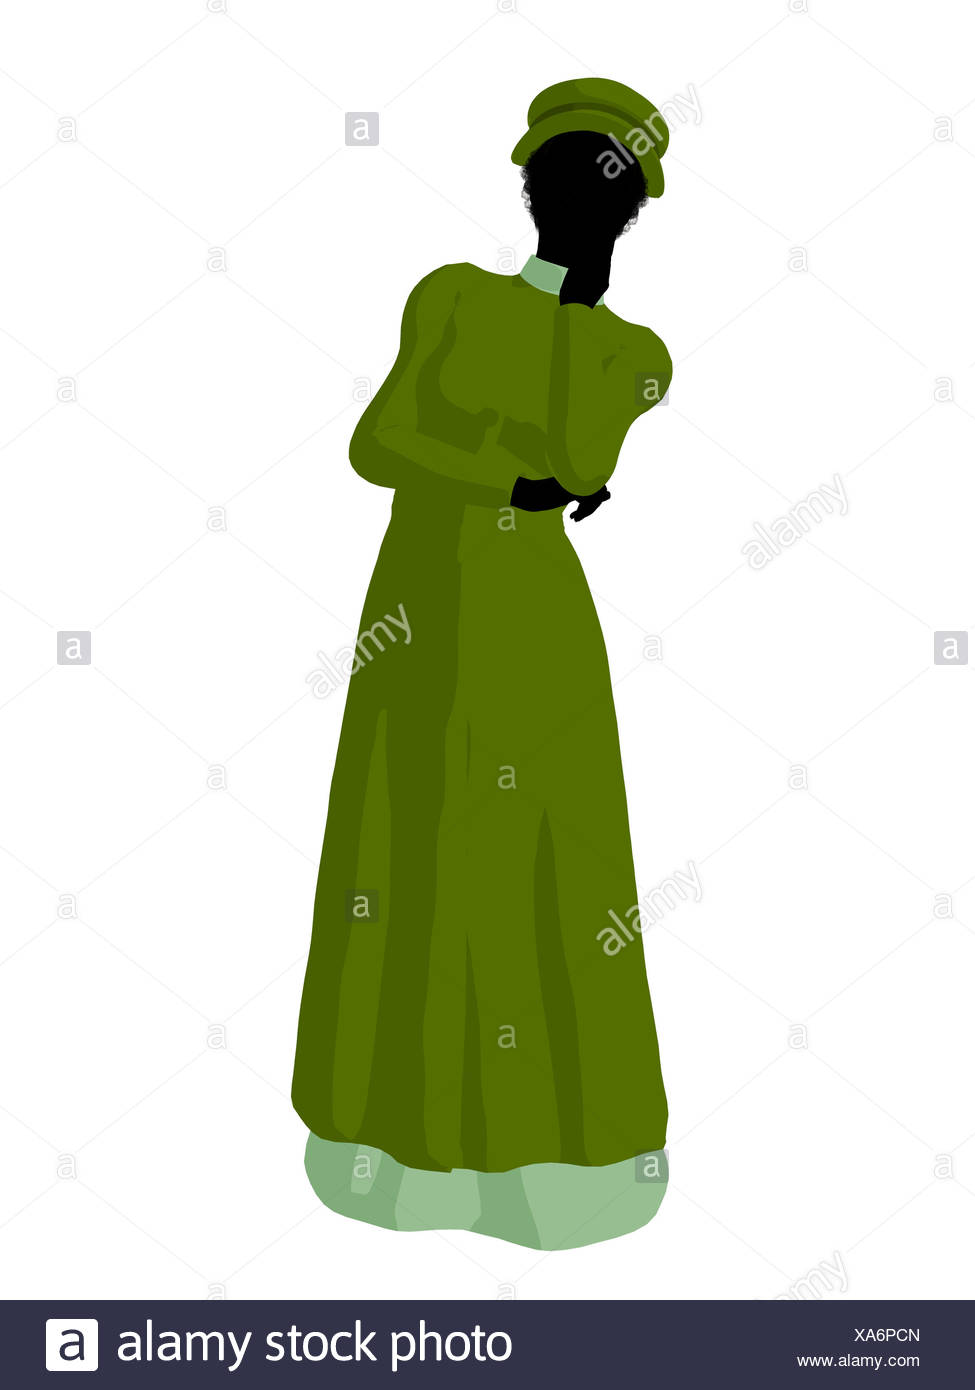 975x1390 African American Victorian Woman Illustration Silhouette Stock